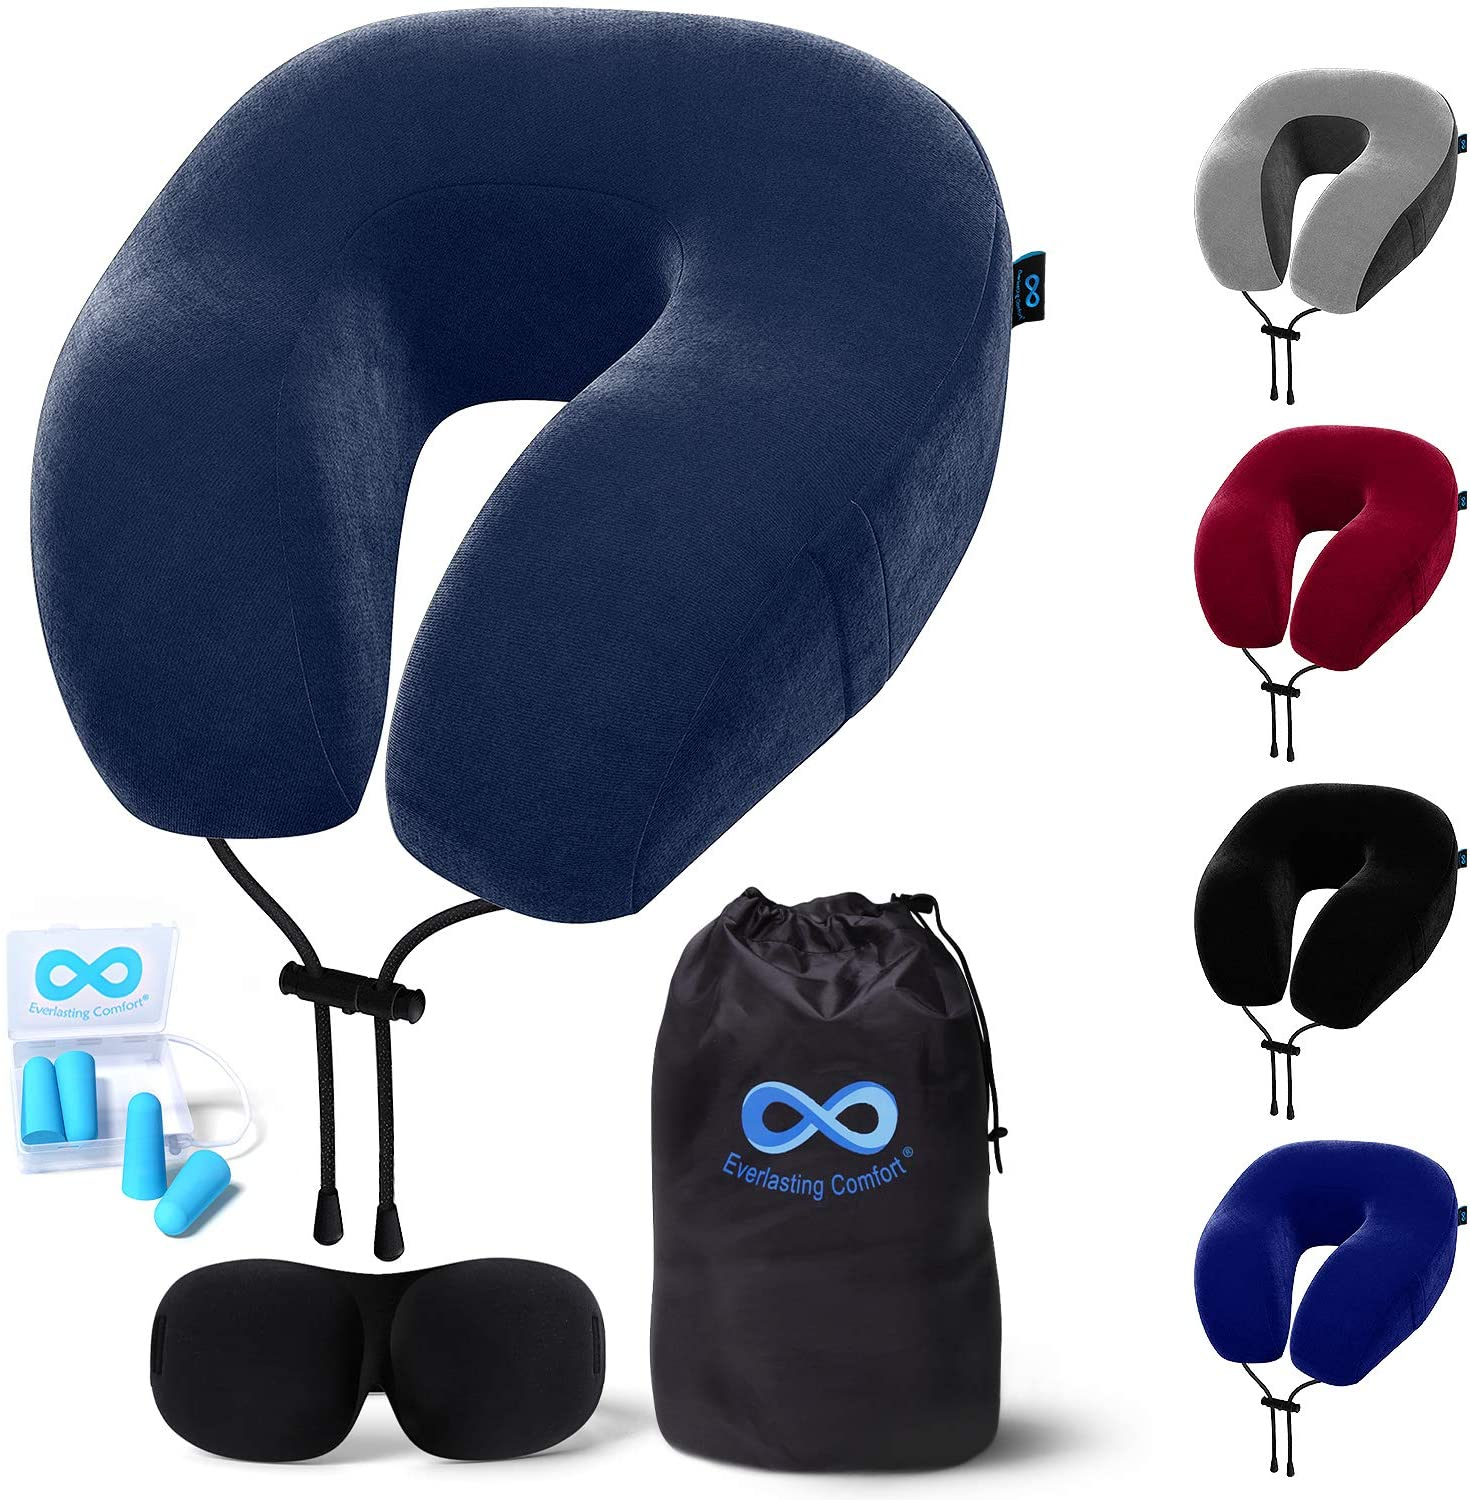 everlasting comfort memory foam travel pillow includes eye masks and earplugs neck pillow for airplane navy blue